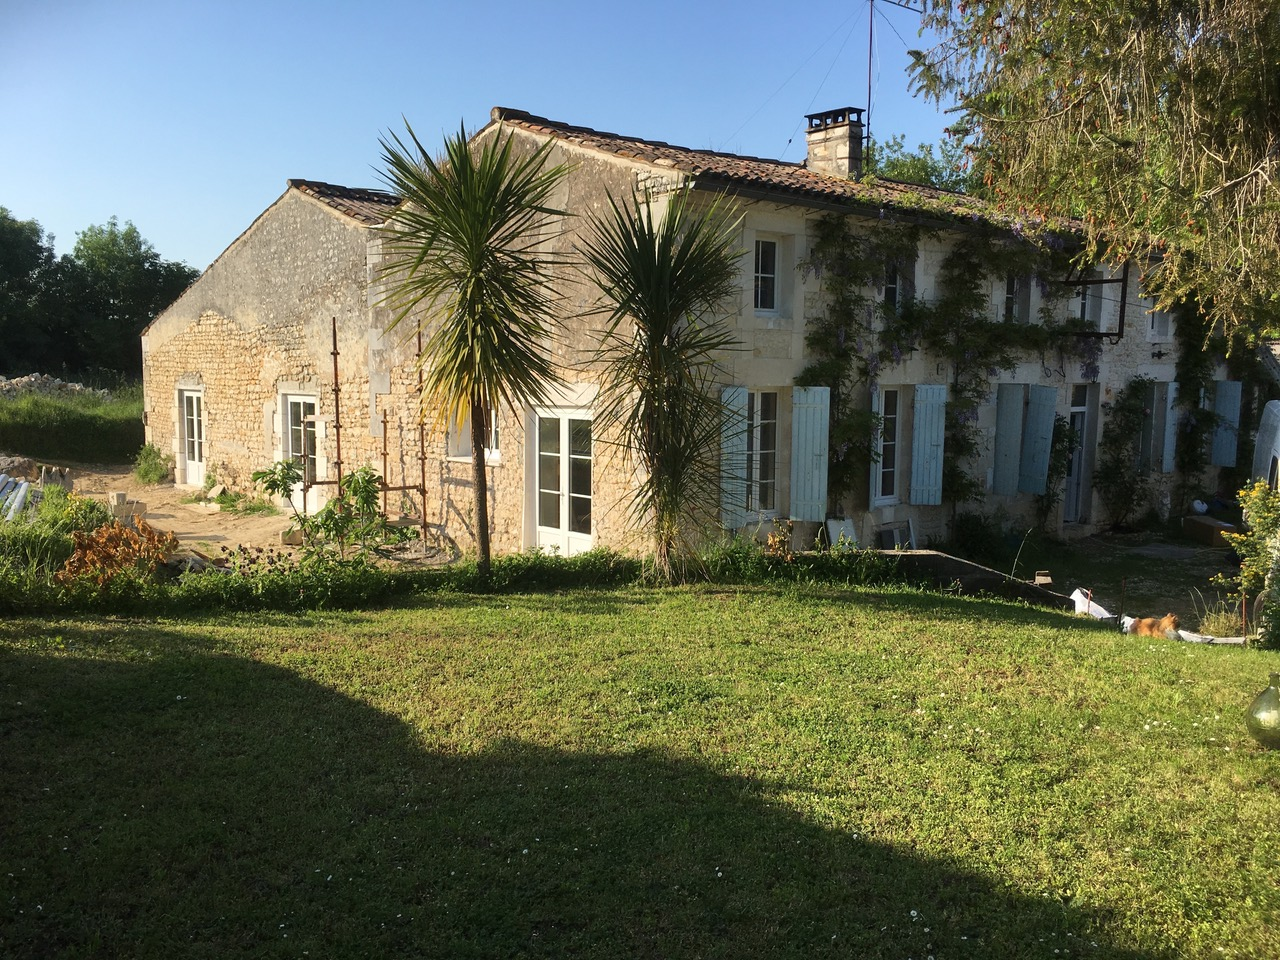 La Maison Blanche is situated in a tiny hamlet just a very short walk from the little town of Saint-Romain-de-Benet in the region of Nouvelle-Aquitaine in the Department of Charente Maritime, which is on the Atlantic west coast of France.